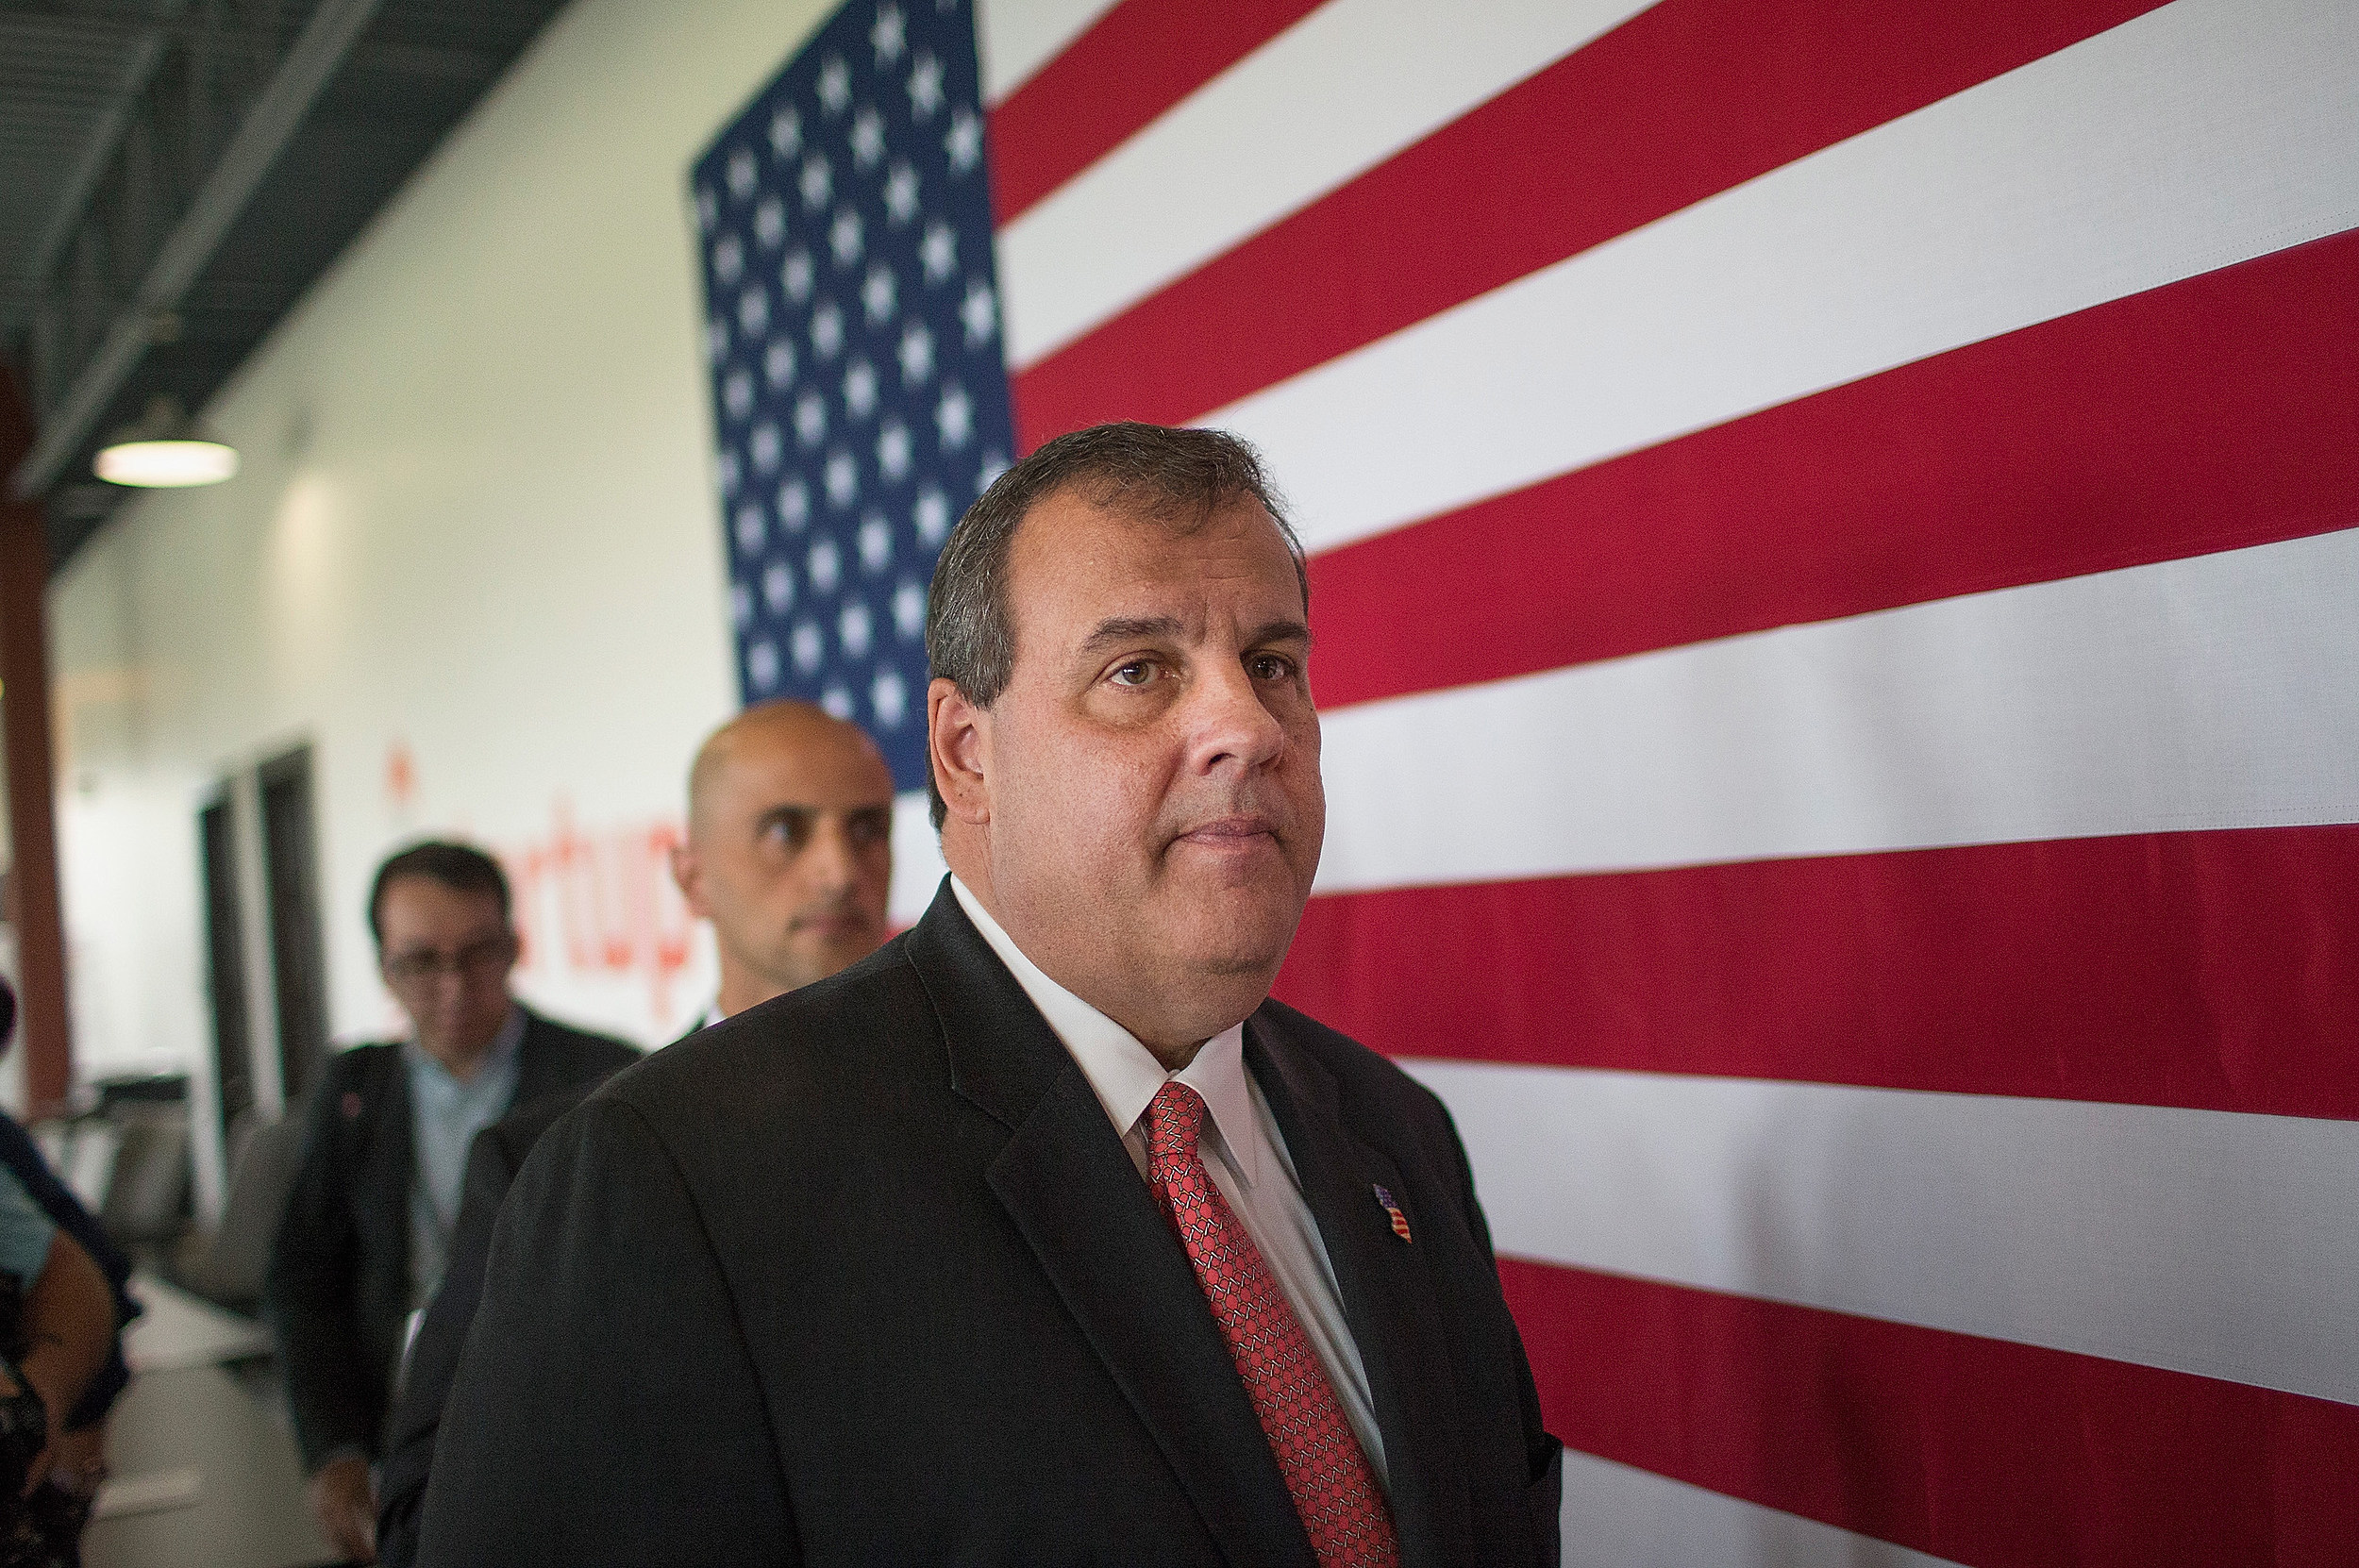 NJ Governor Chris Christie Speaks At A Startup Accelerator In Iowa